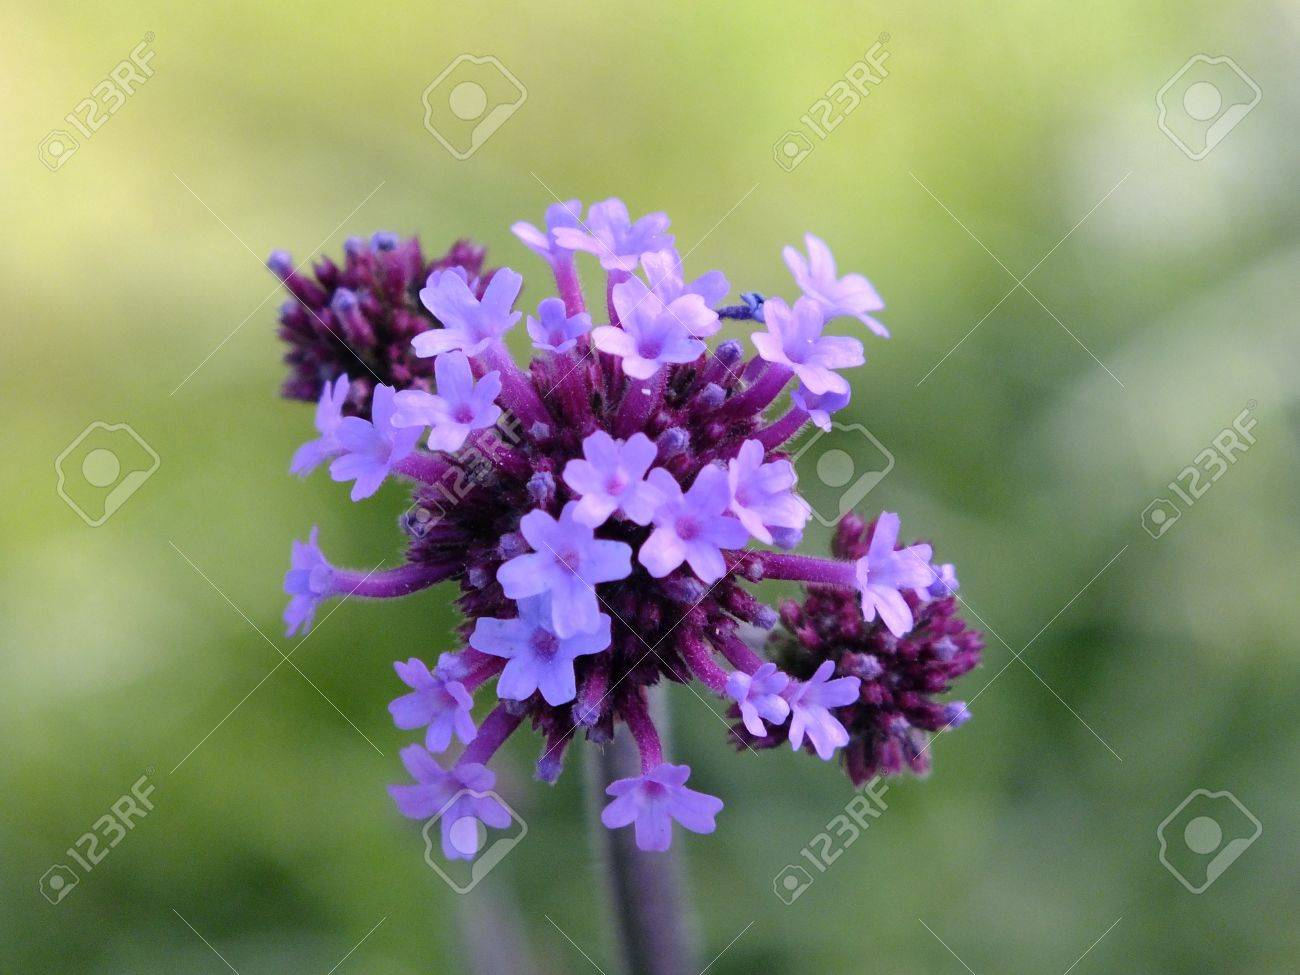 A Cluster Of Light And Dark Purple Flowers Stock Photo Picture And